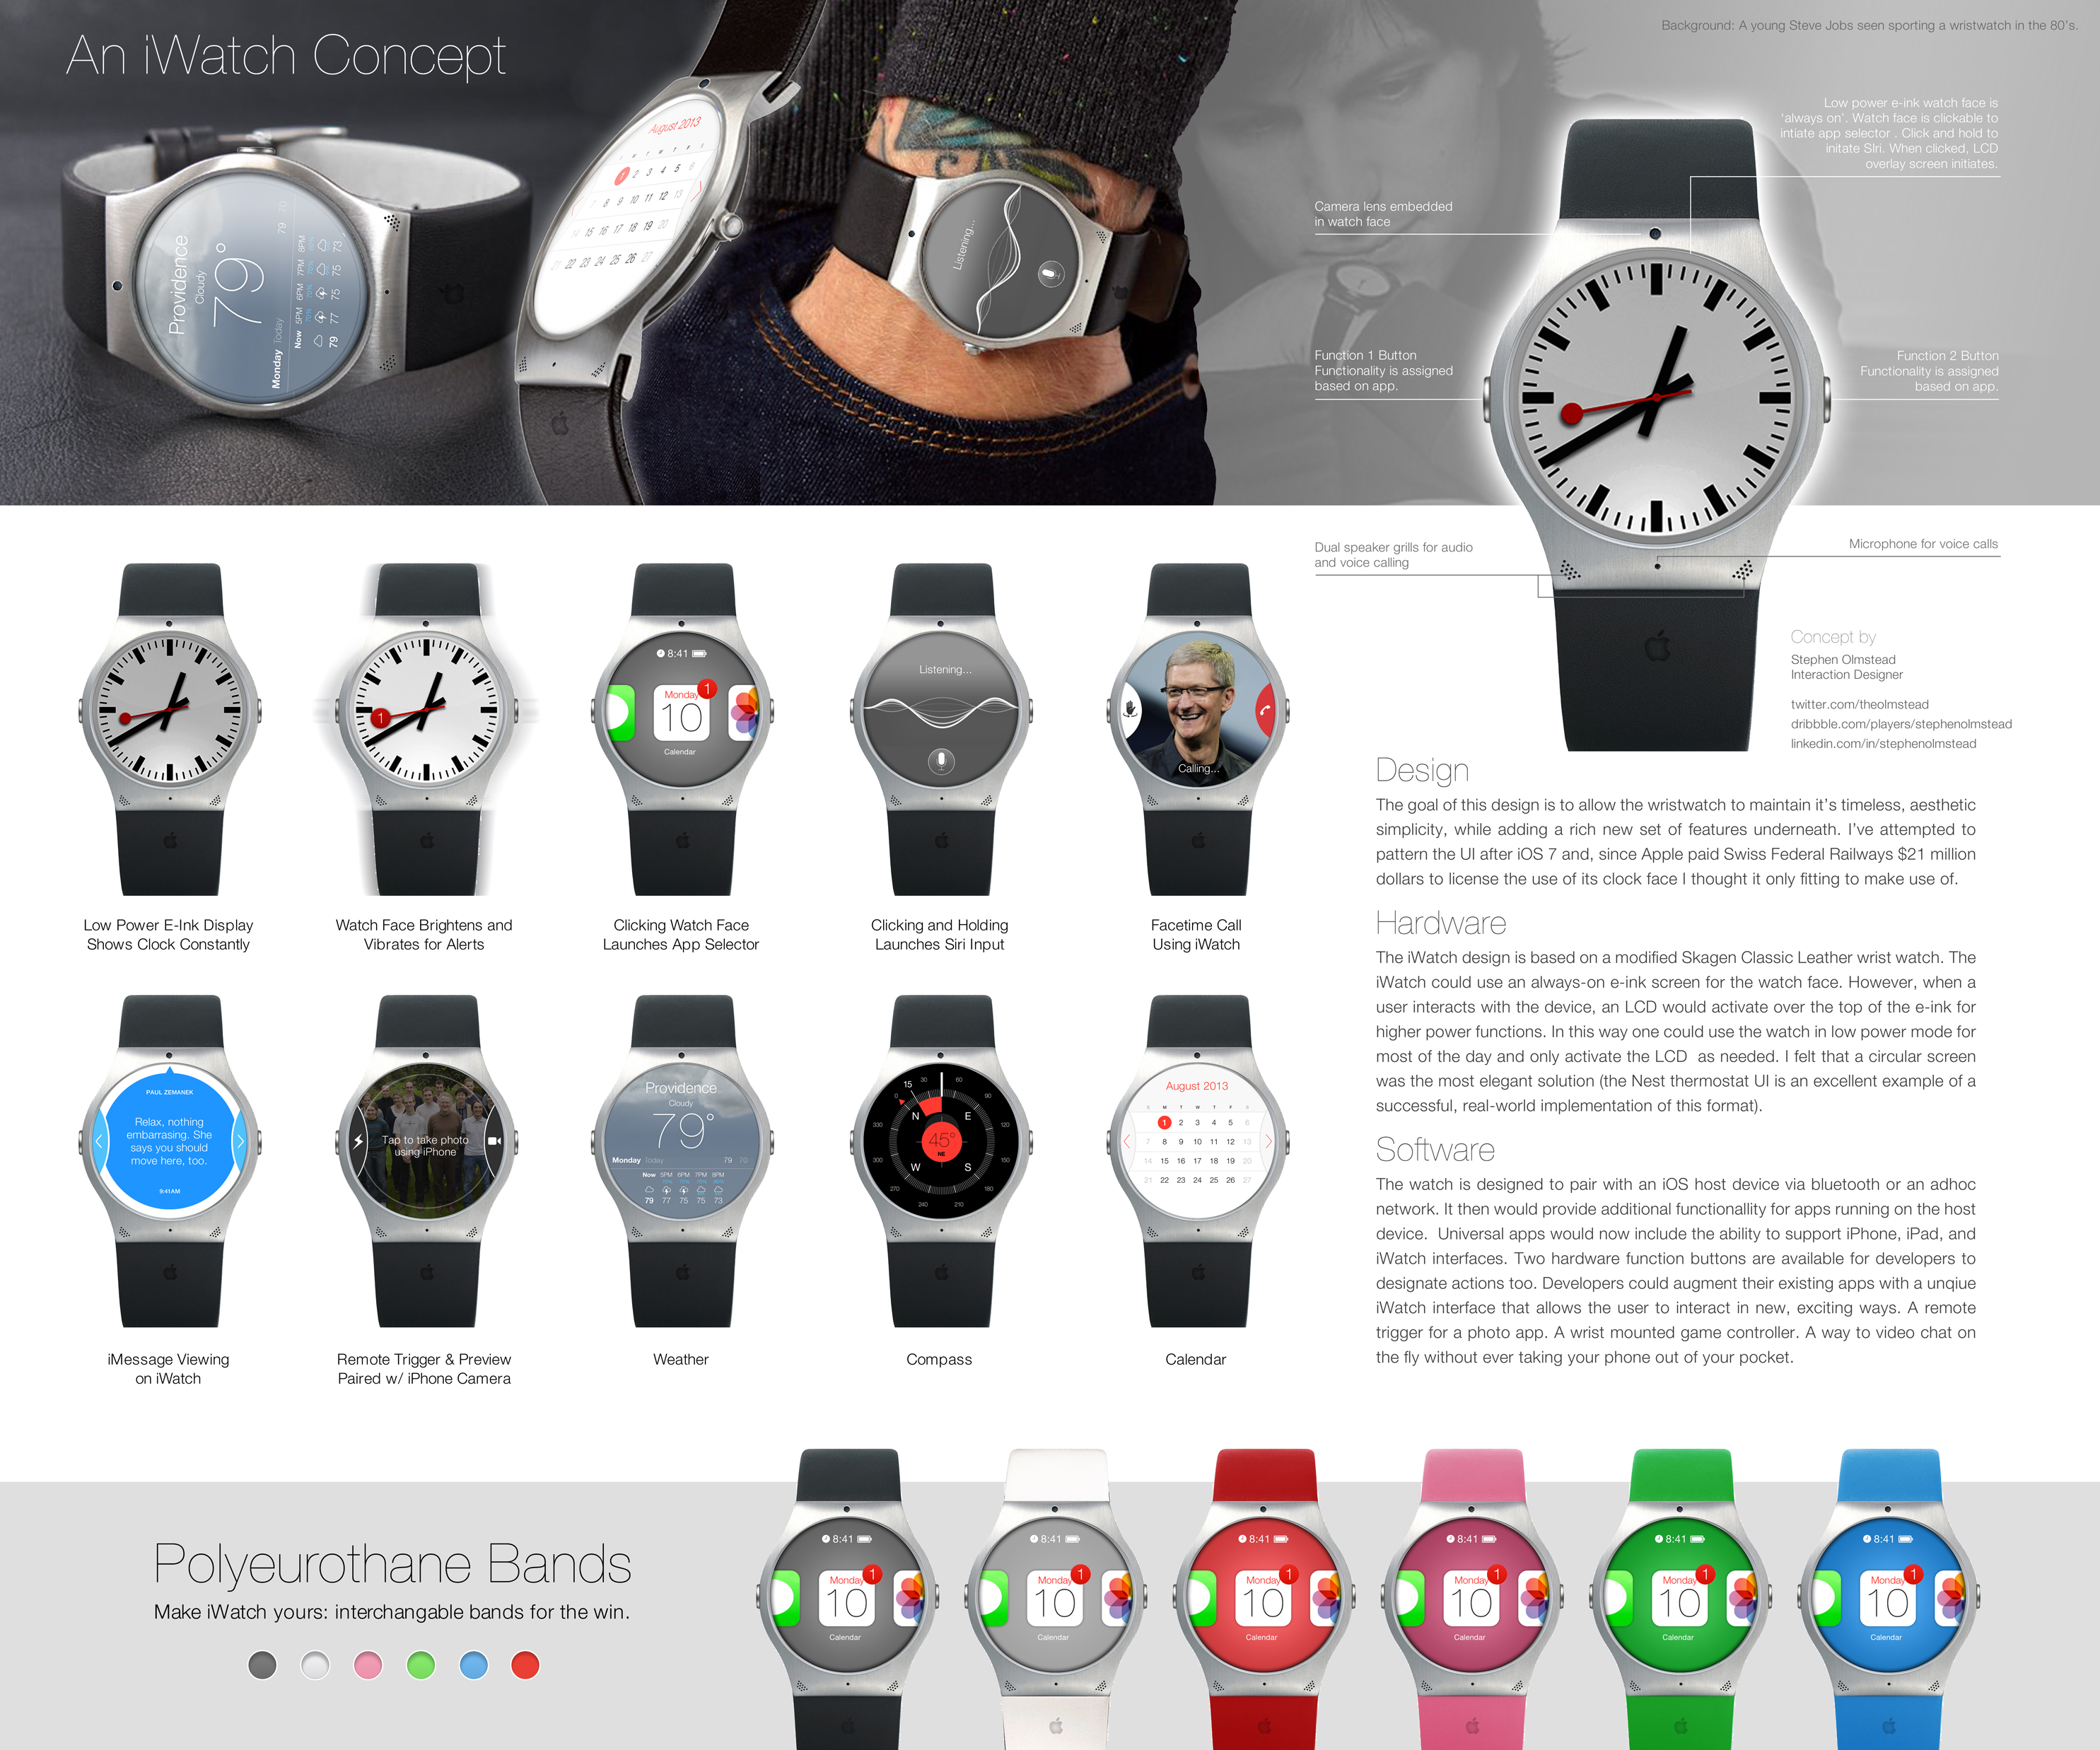 iwatch mockup Fashion is subjective: Smartwatches and Google Glass wont sell unless people think theyre stylish